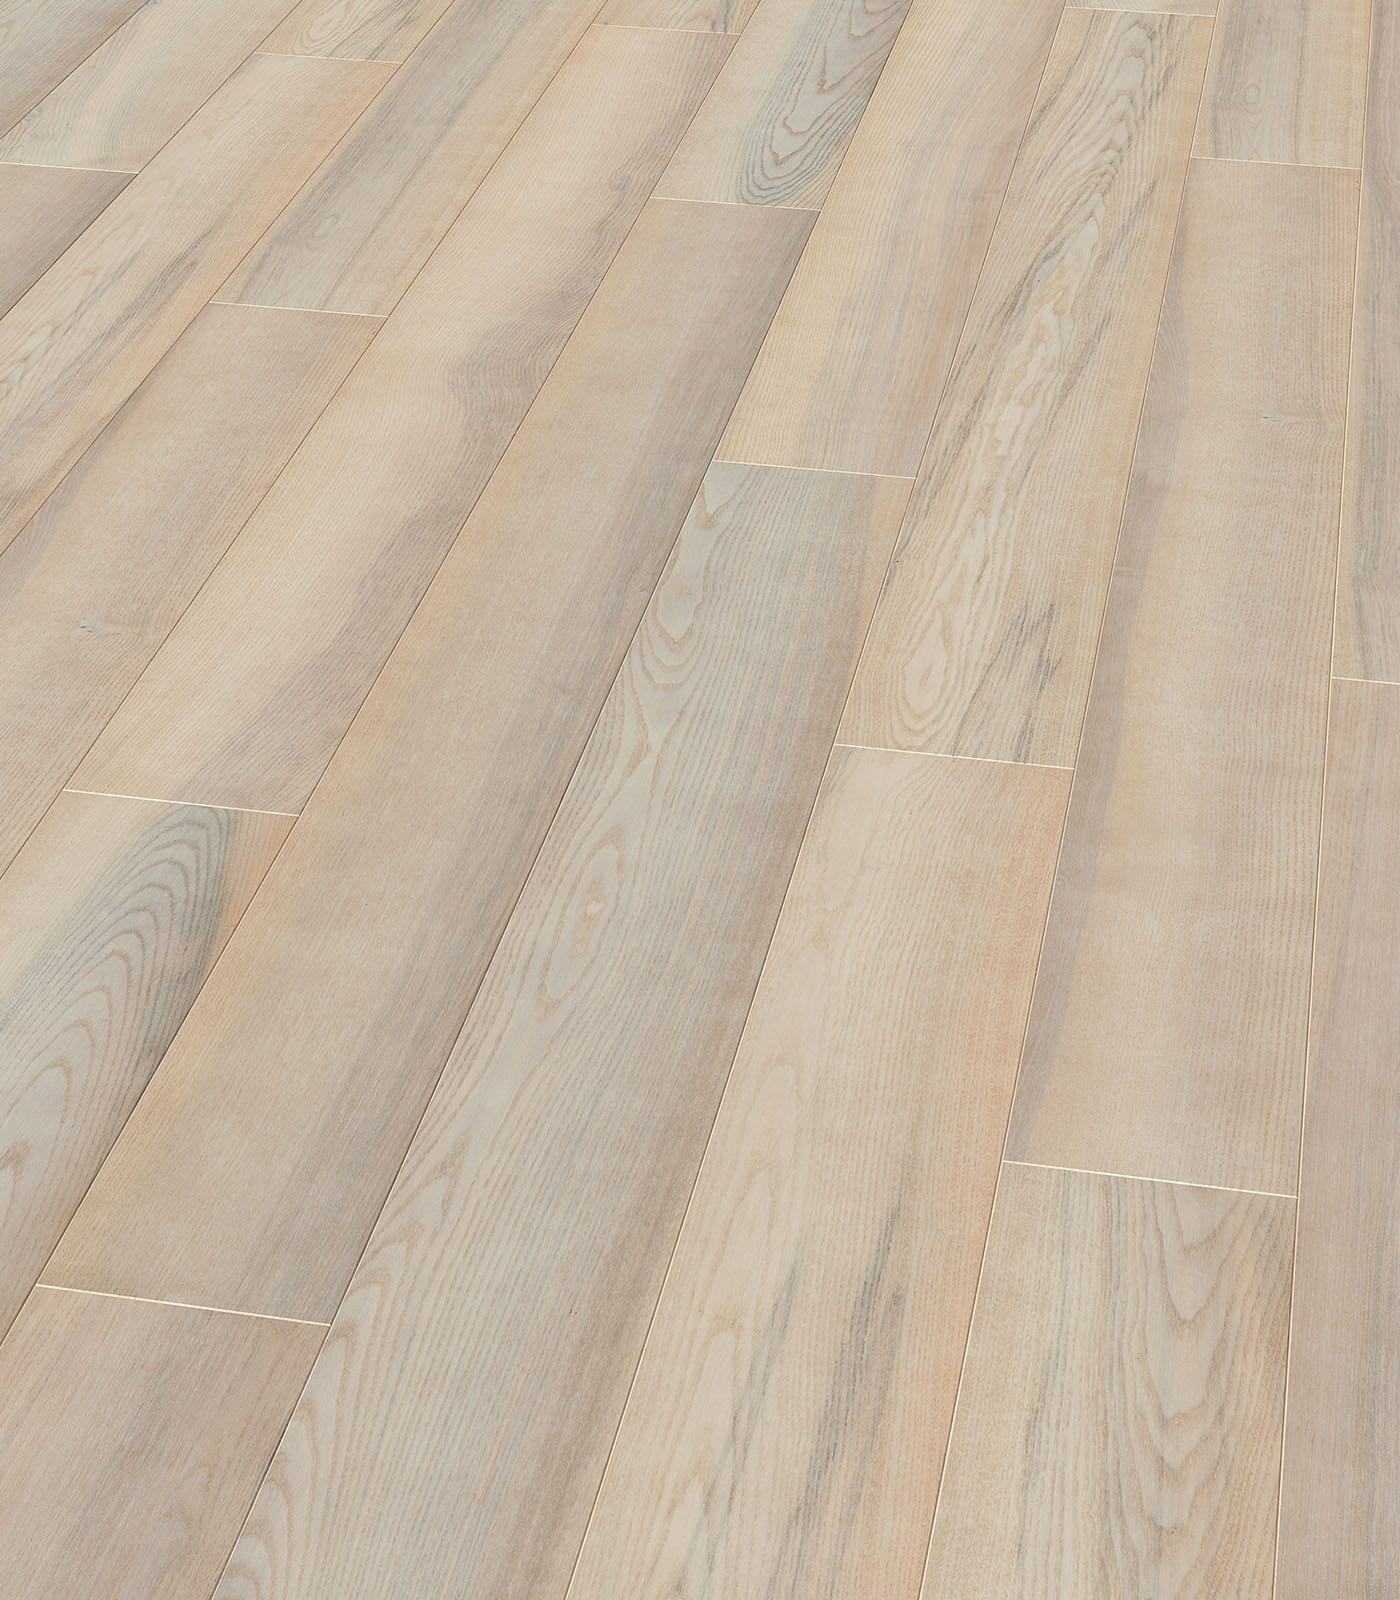 Prague-After oak Collection-European Ash floors - angle